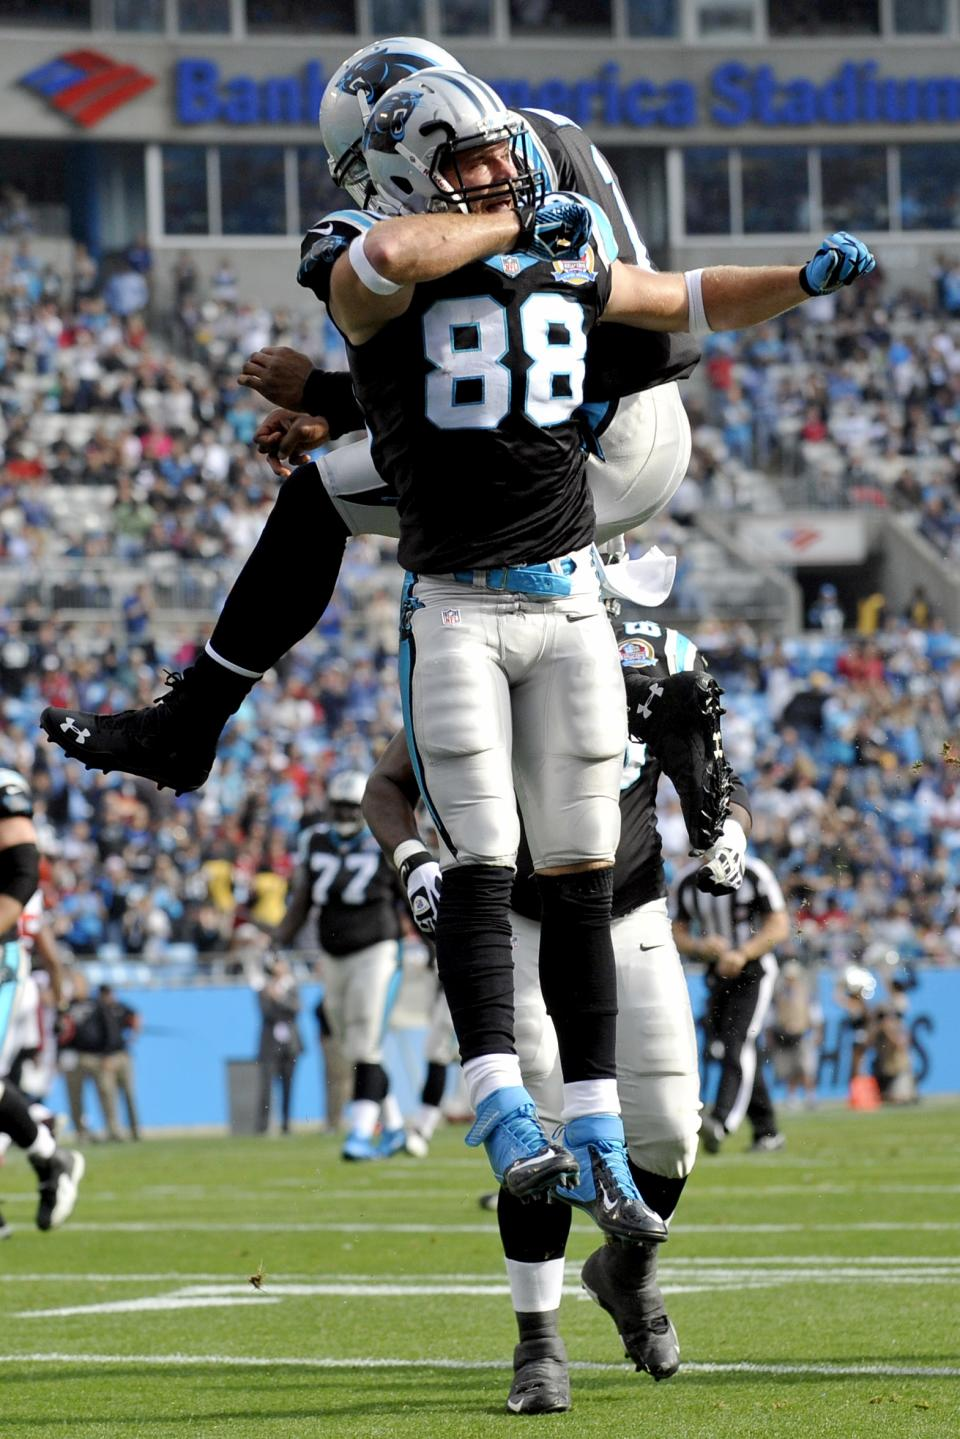 Carolina Panthers' Greg Olsen (88) and Cam Newton (1) celebrate Olsen's touchdown catch against the Atlanta Falcons during the first half of an NFL football game in Charlotte, N.C., Sunday, Dec. 9, 2012. (AP Photo/Rainier Ehrhardt)